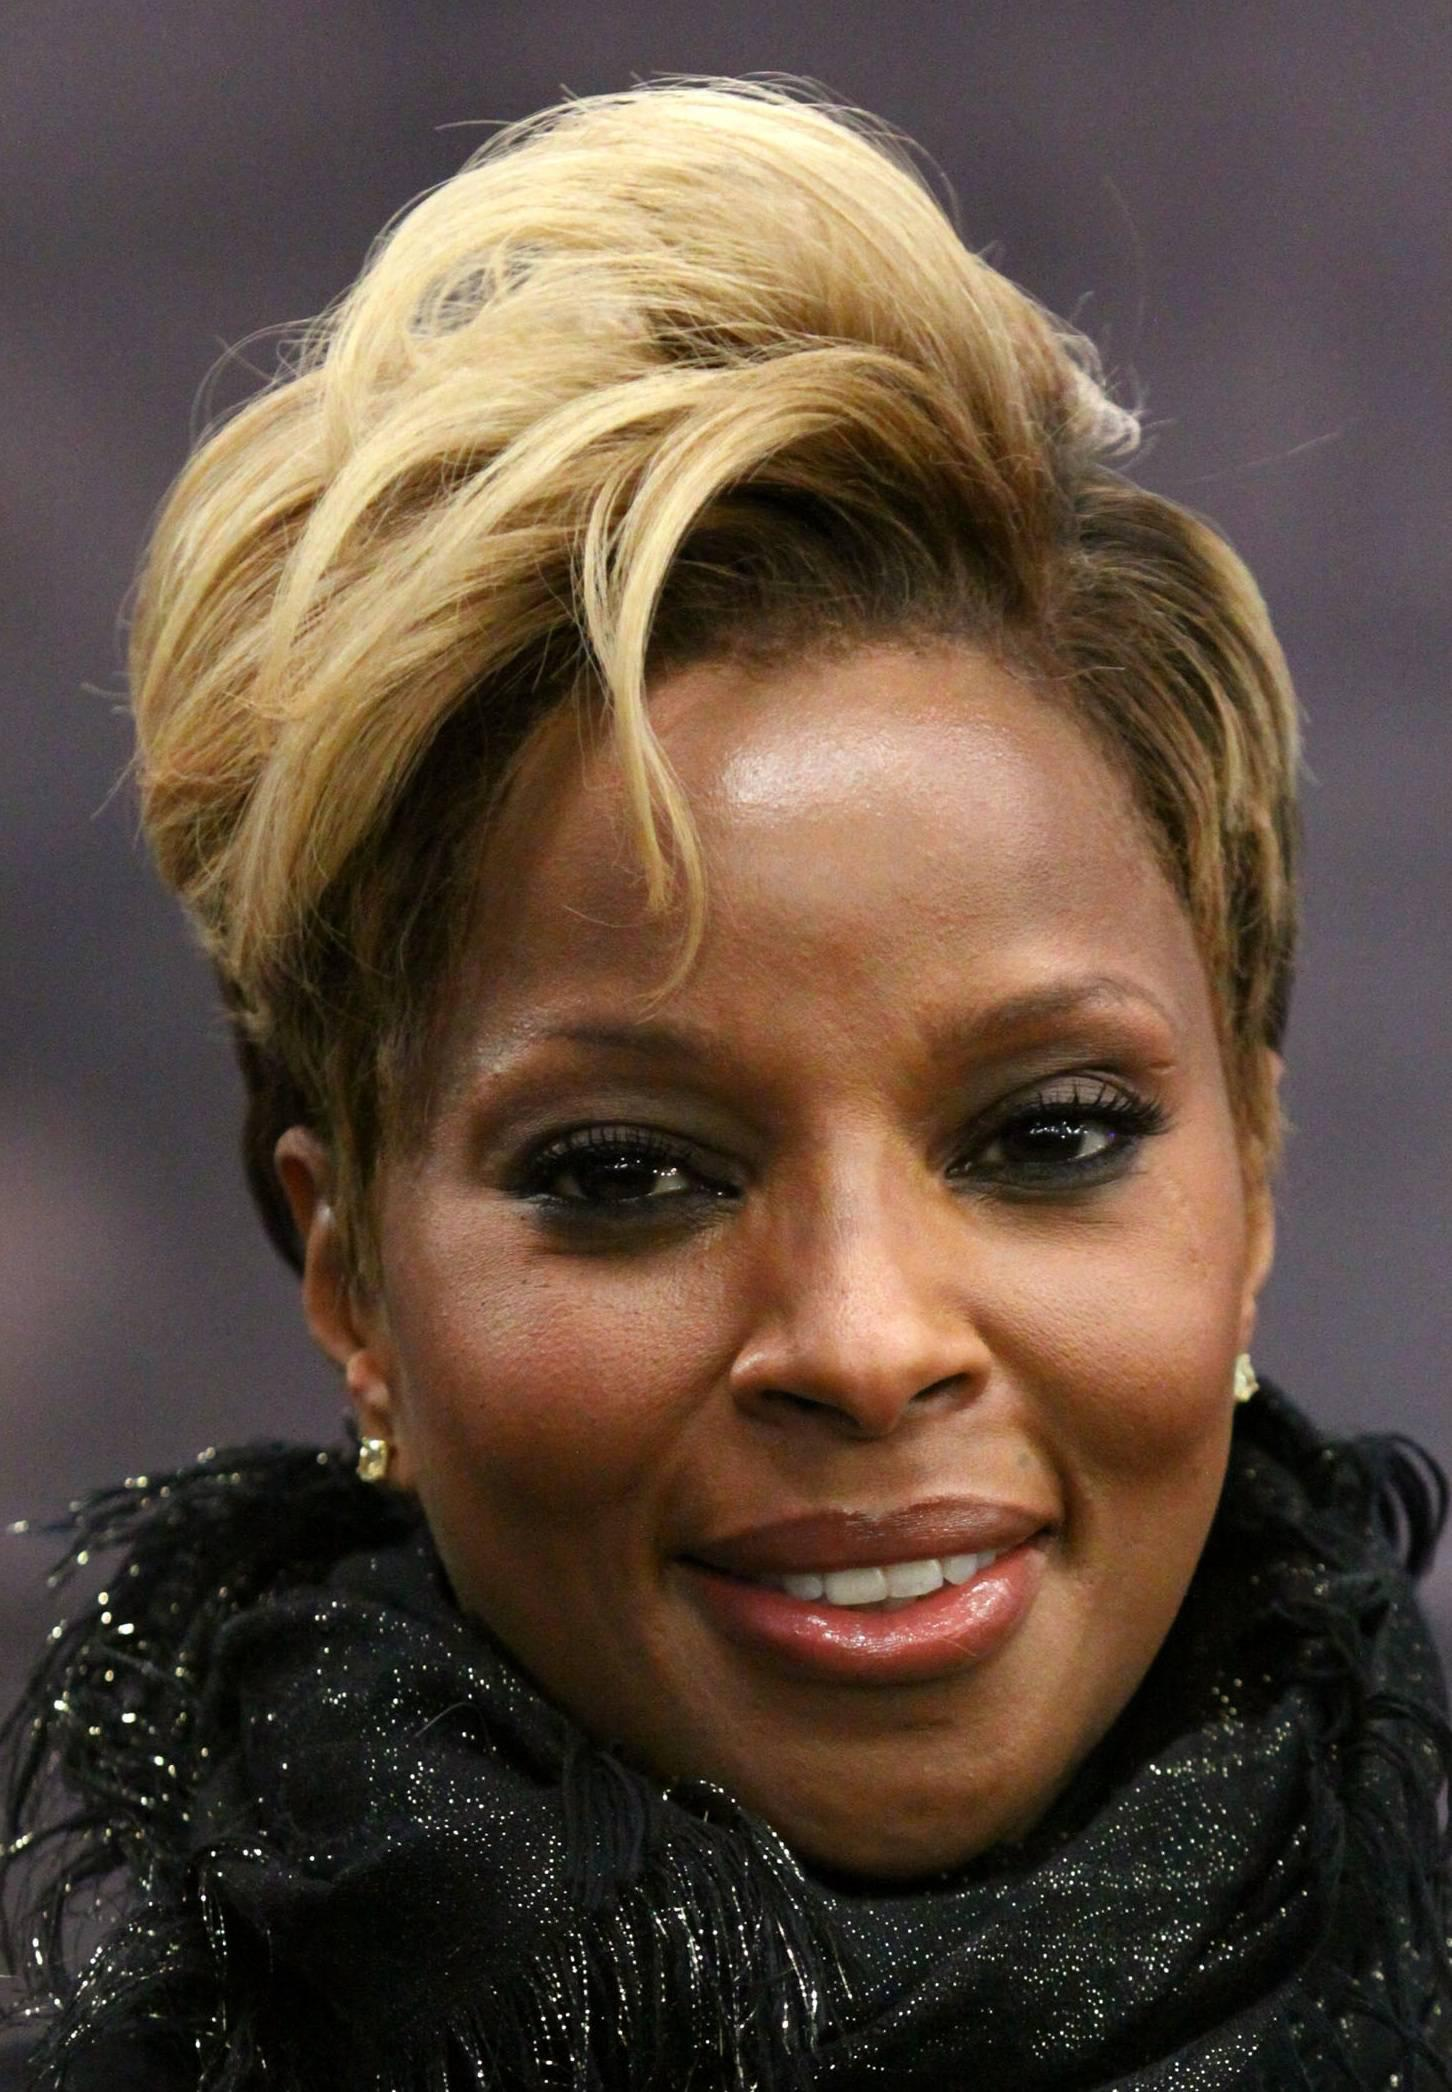 Beautiful blonde short haircut oval face African American